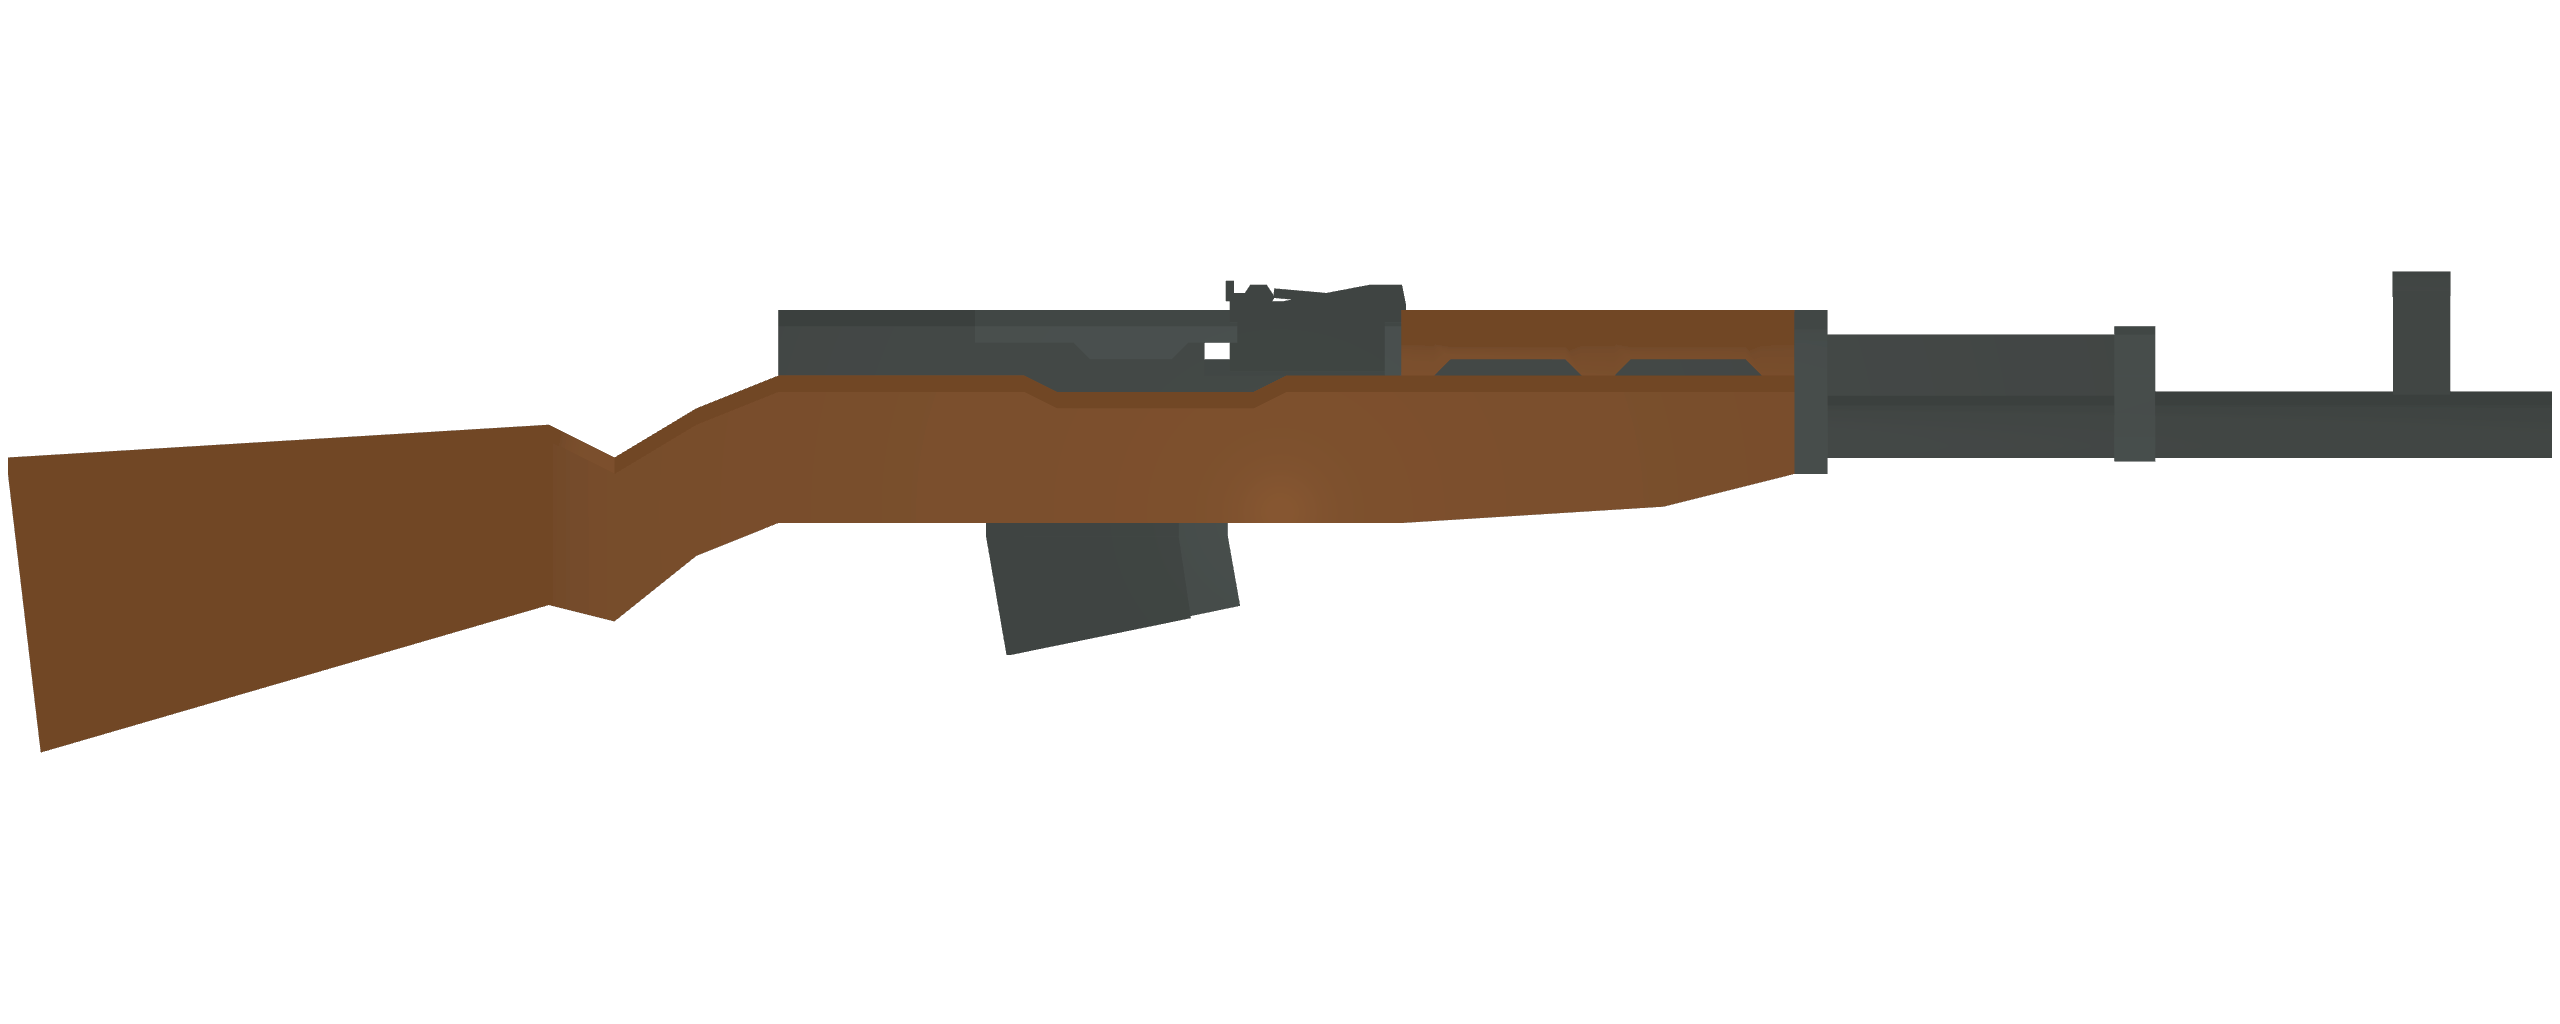 Unturned Uncreated Warfare Mods & All ID List + Attachments - Russian Weapons - EE8AF67